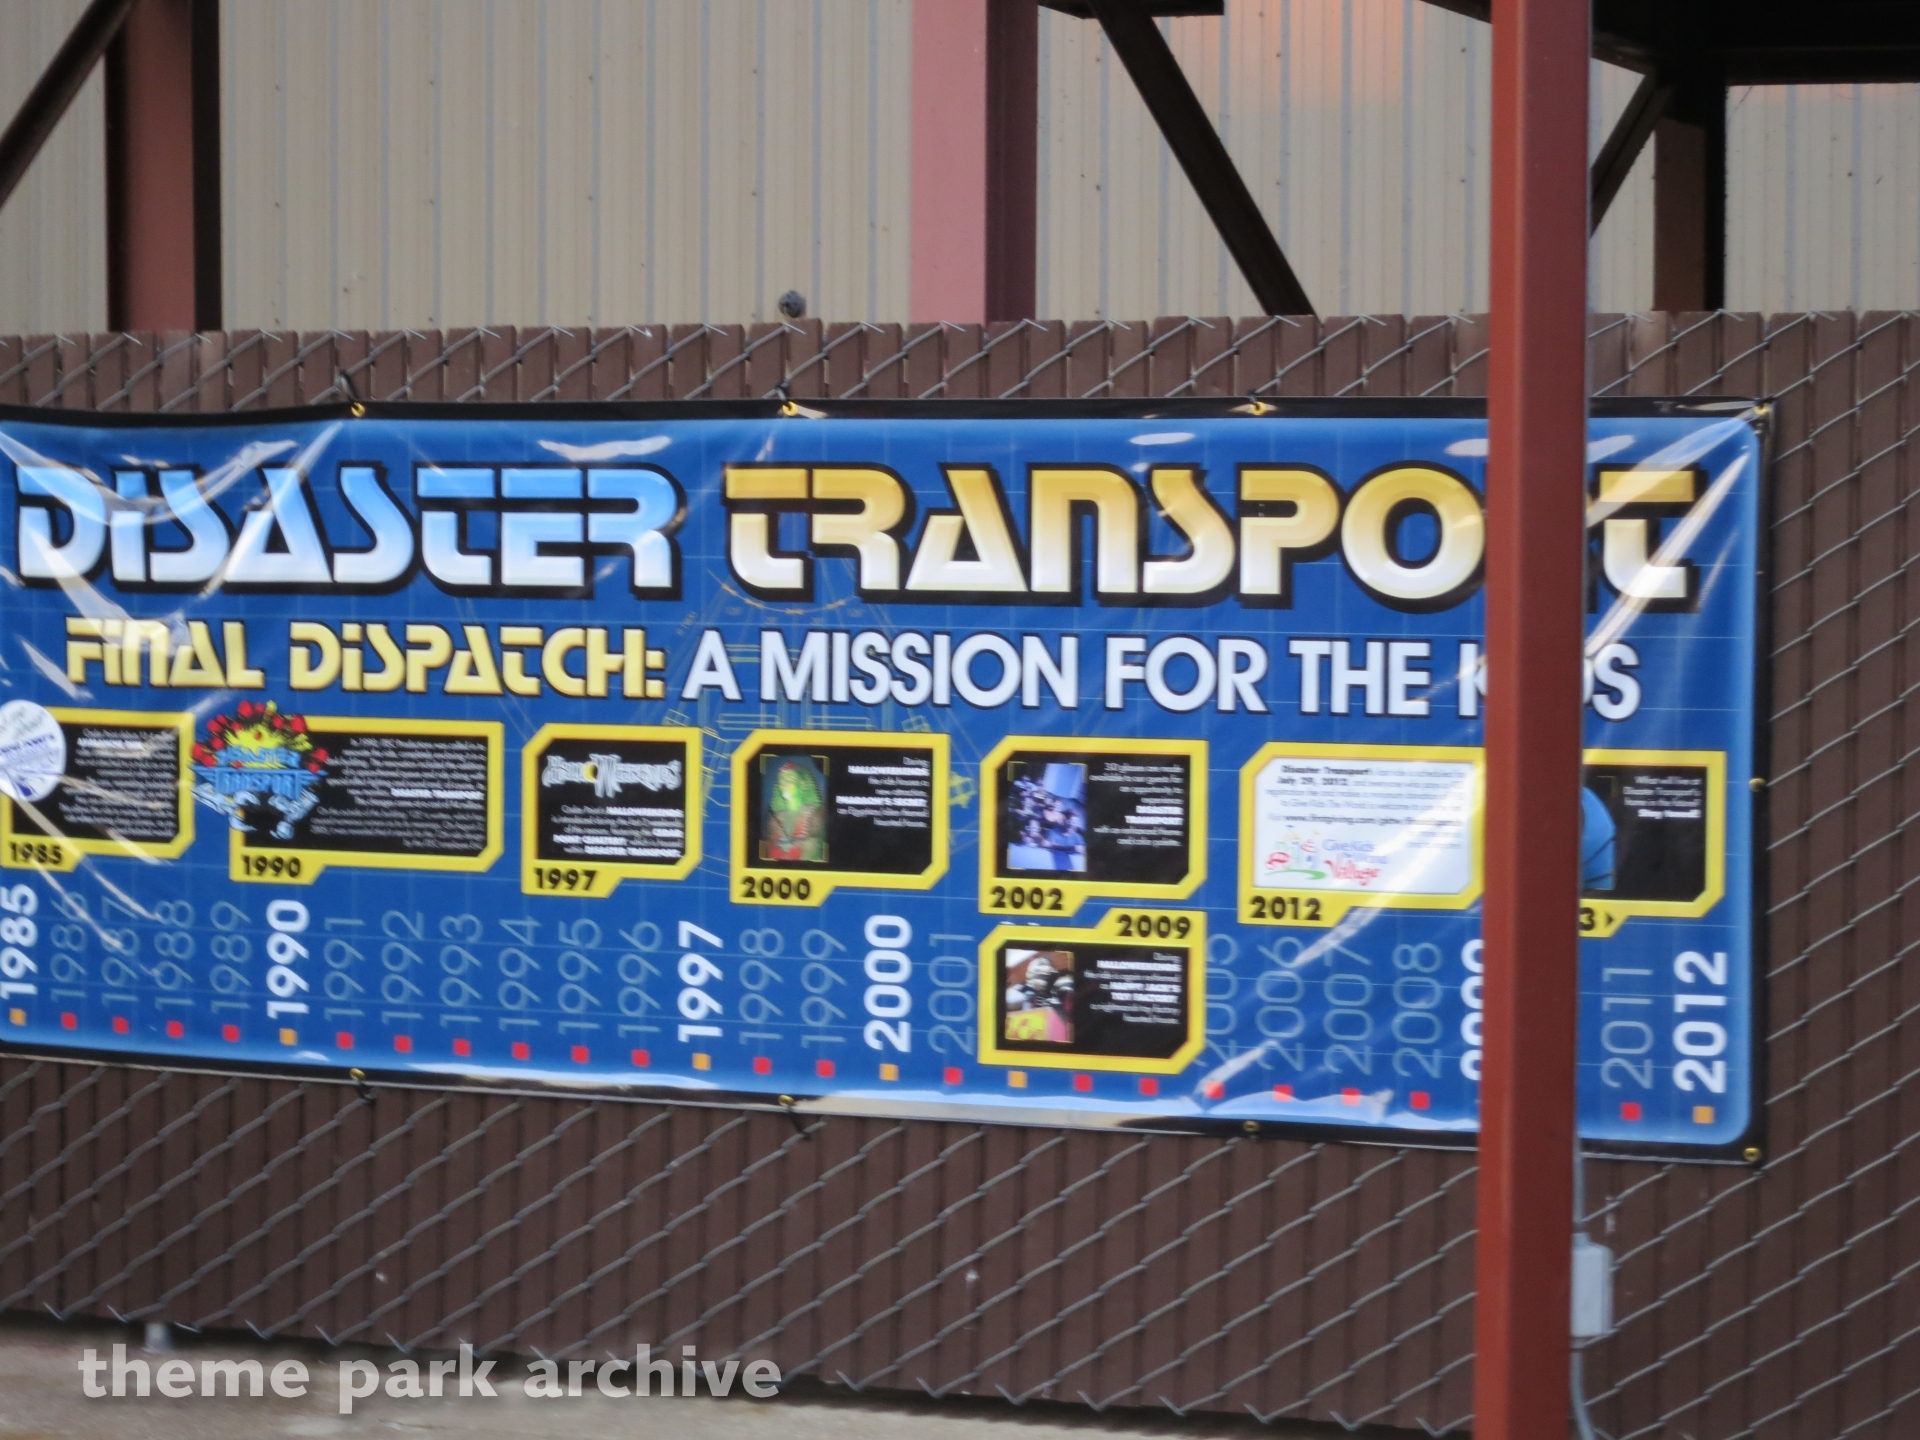 Disaster Transport at Cedar Point